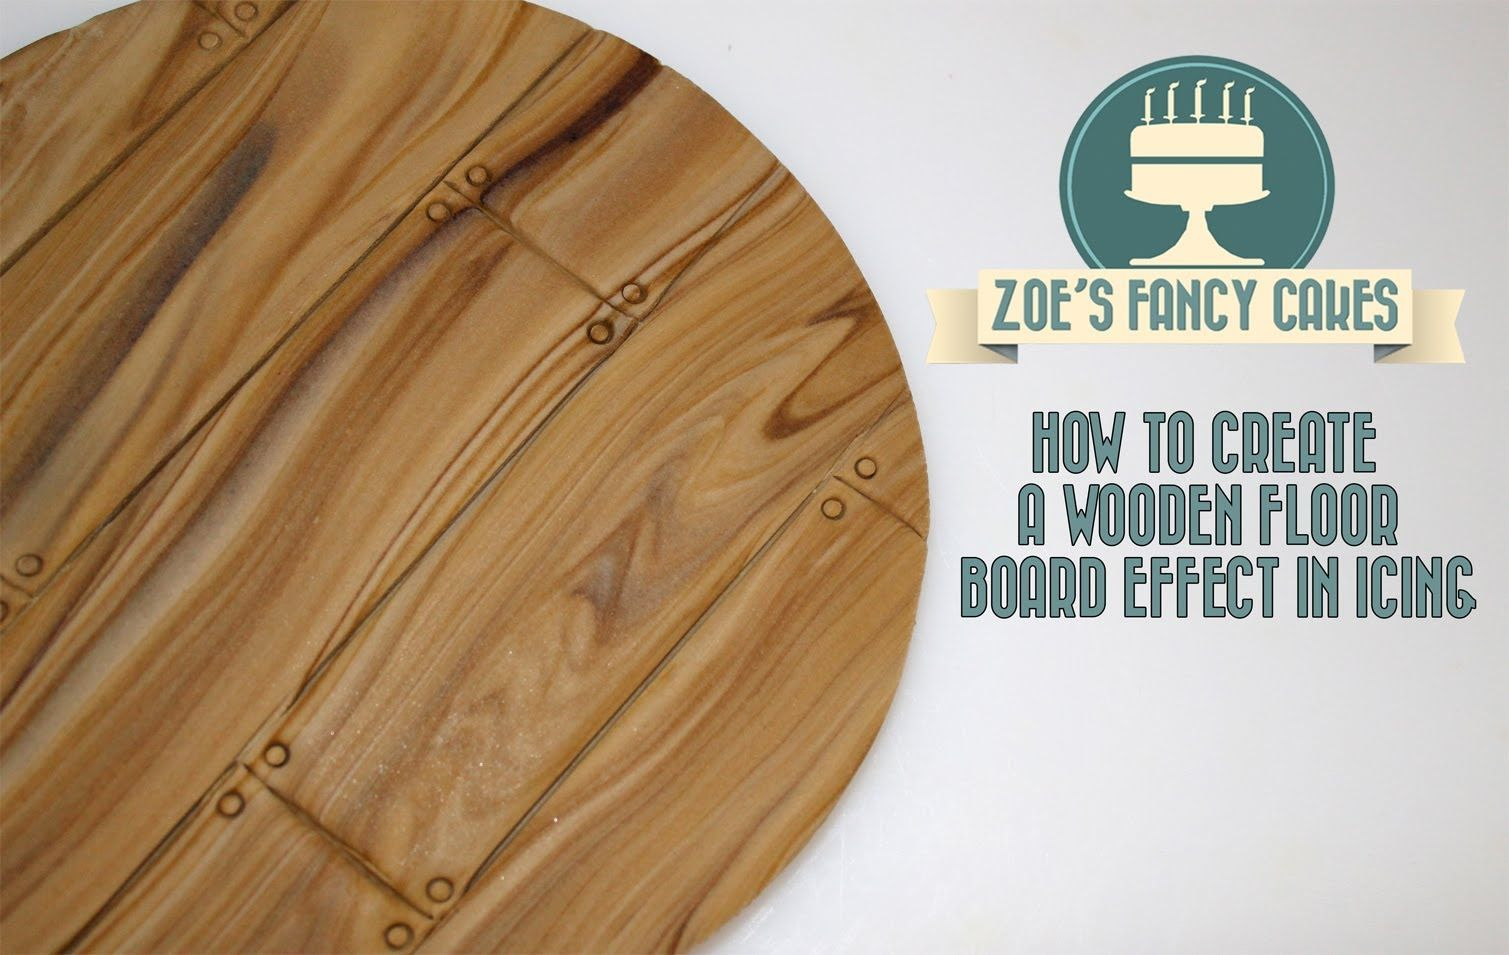 How to make a wooden floor board effect in icing for cake